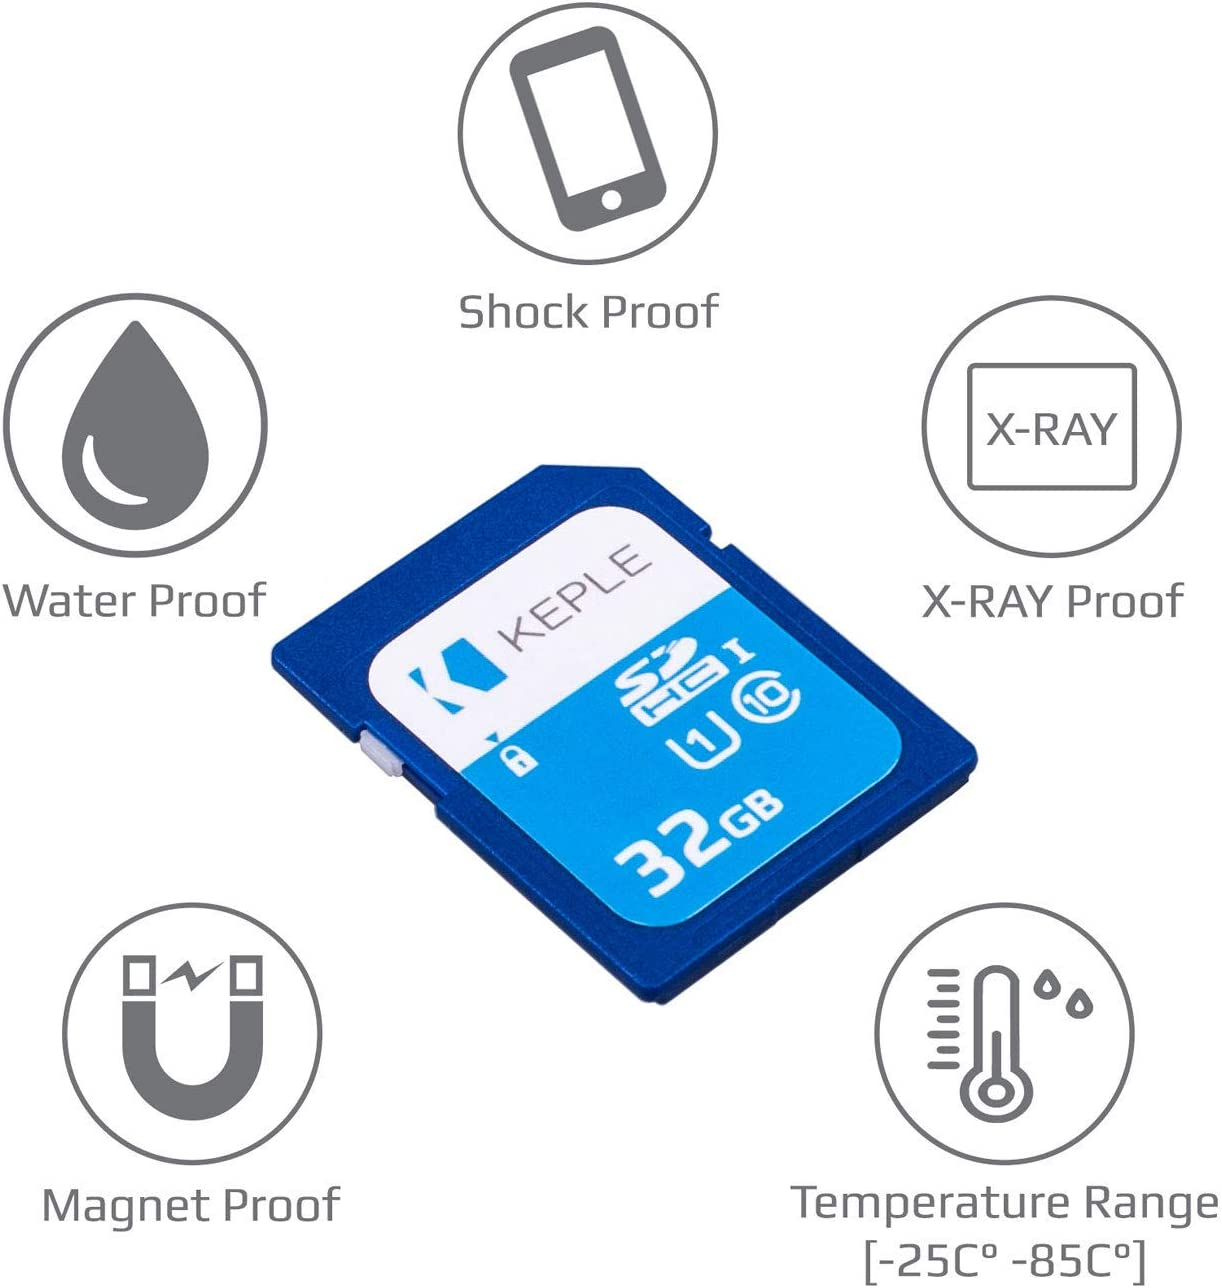 32GB SD Memory Card   SD Card Compatible with Sony Cybershot Series DSC-W690, DSC-WX150, DSC-WX300, DSC-WX80, DSC-RX1, DSC-TX20, DSC-HX300, DSC-HX50V, DSC-HX90V, DSC-TF1 DSLR Camera   32 GB